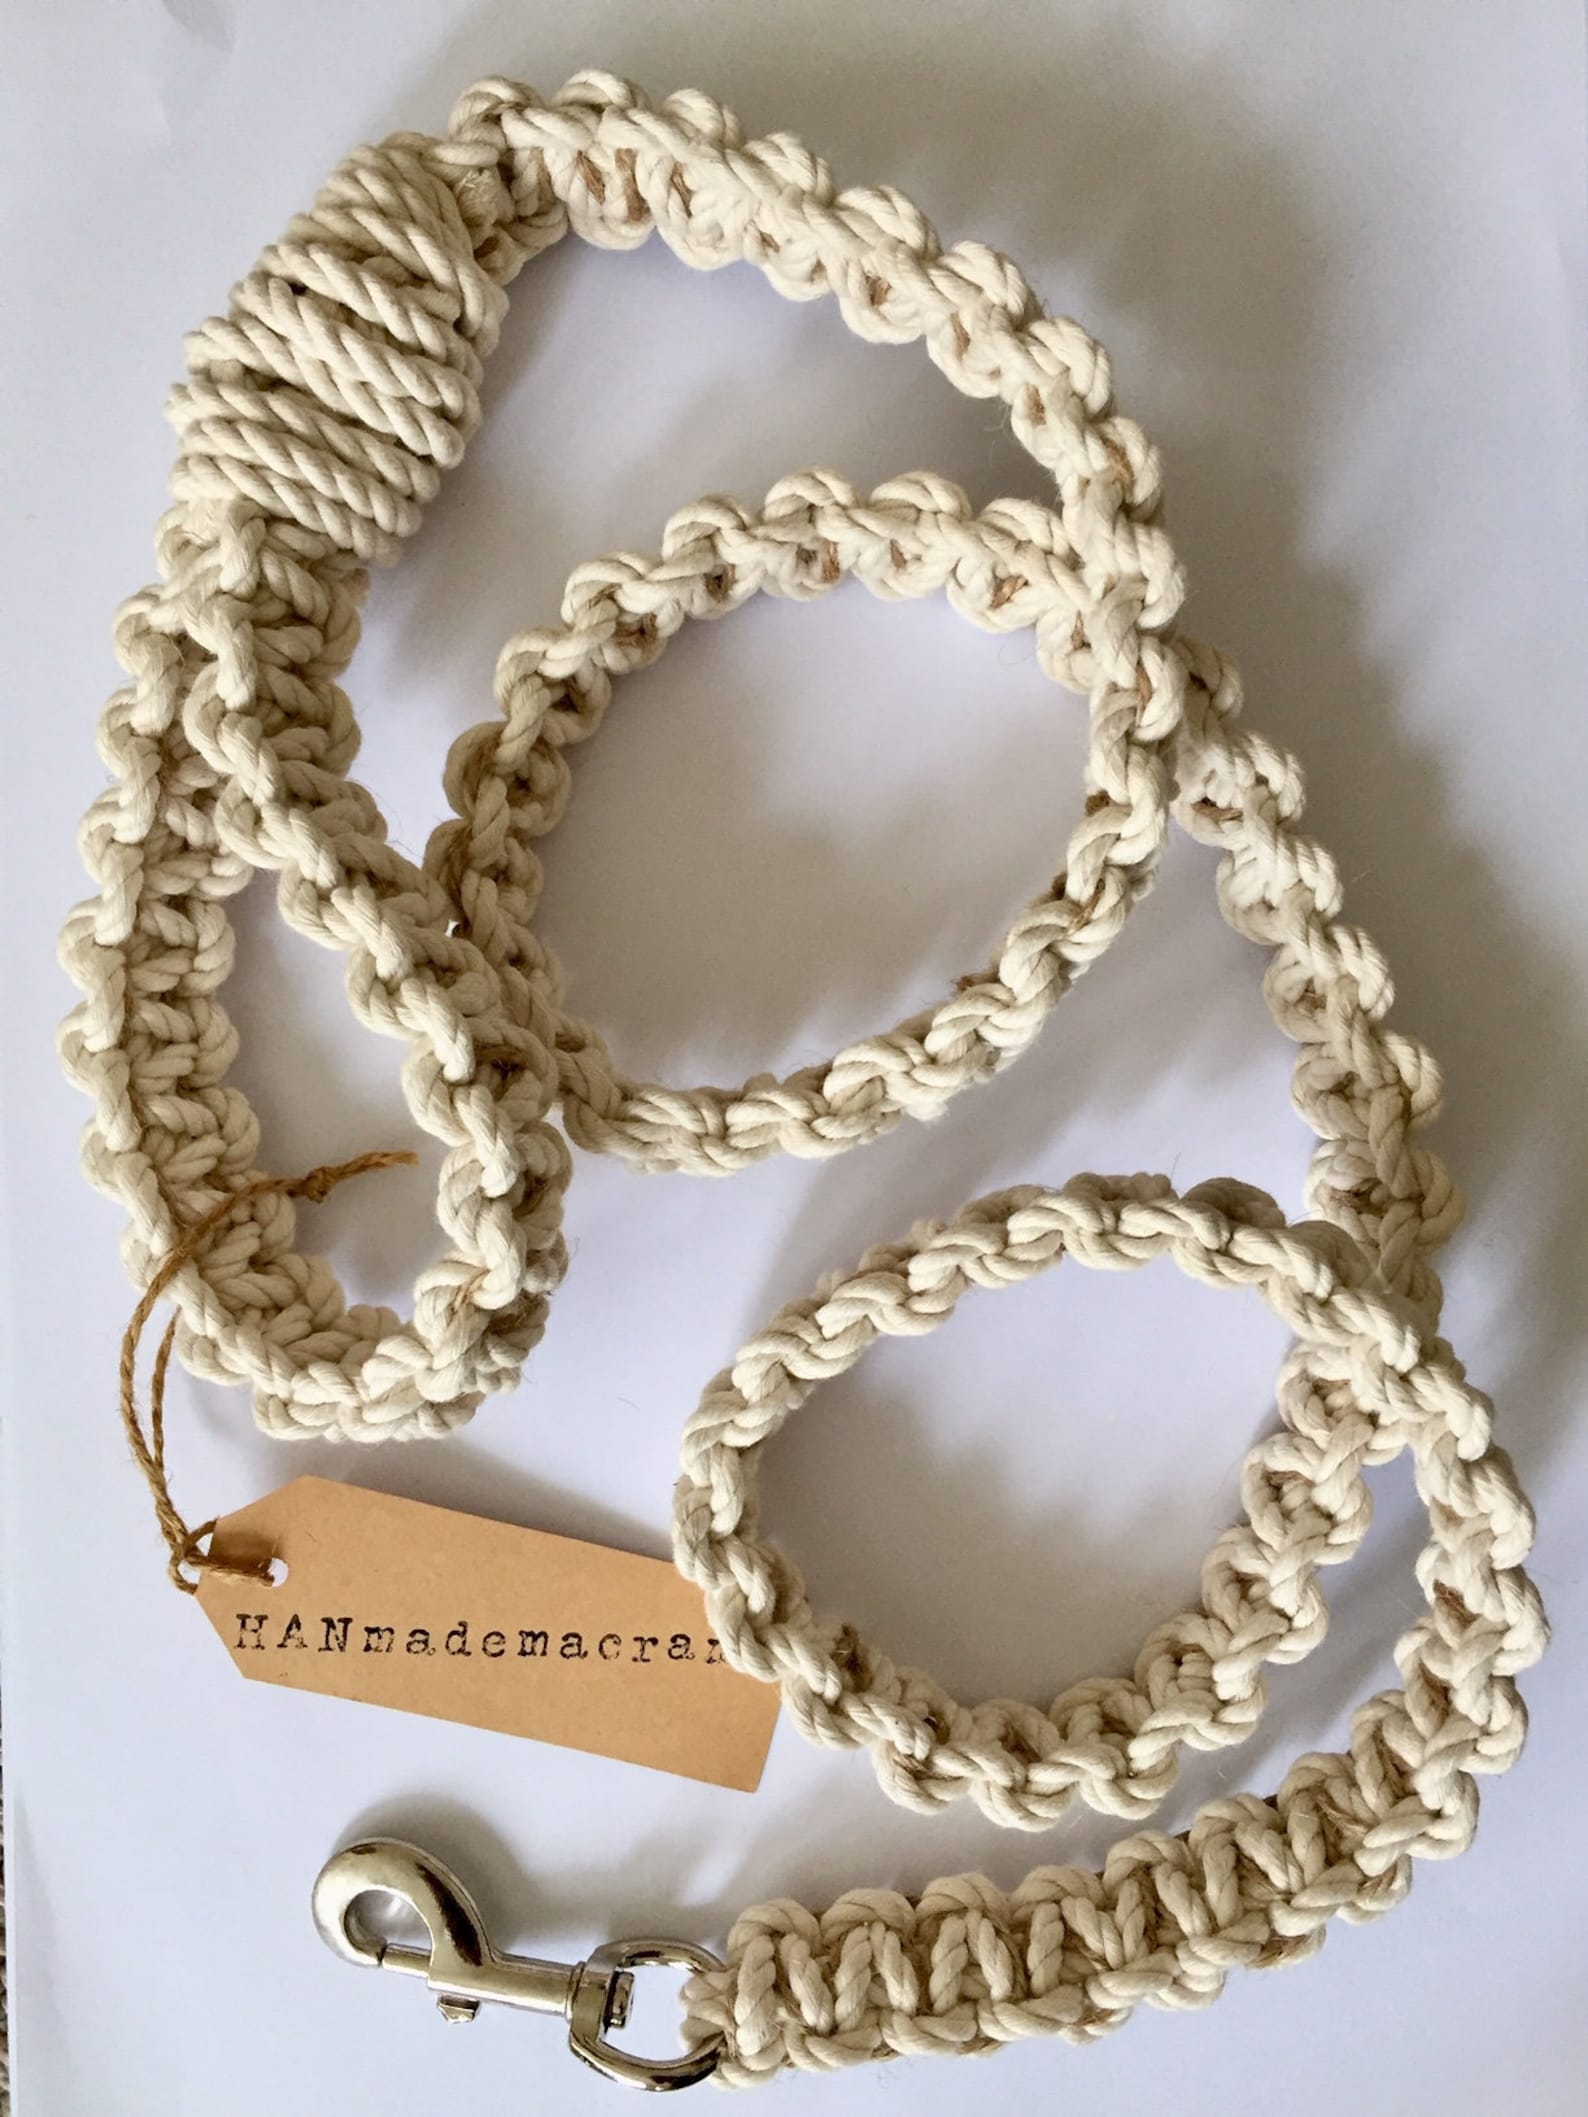 Australian macrame dog leash